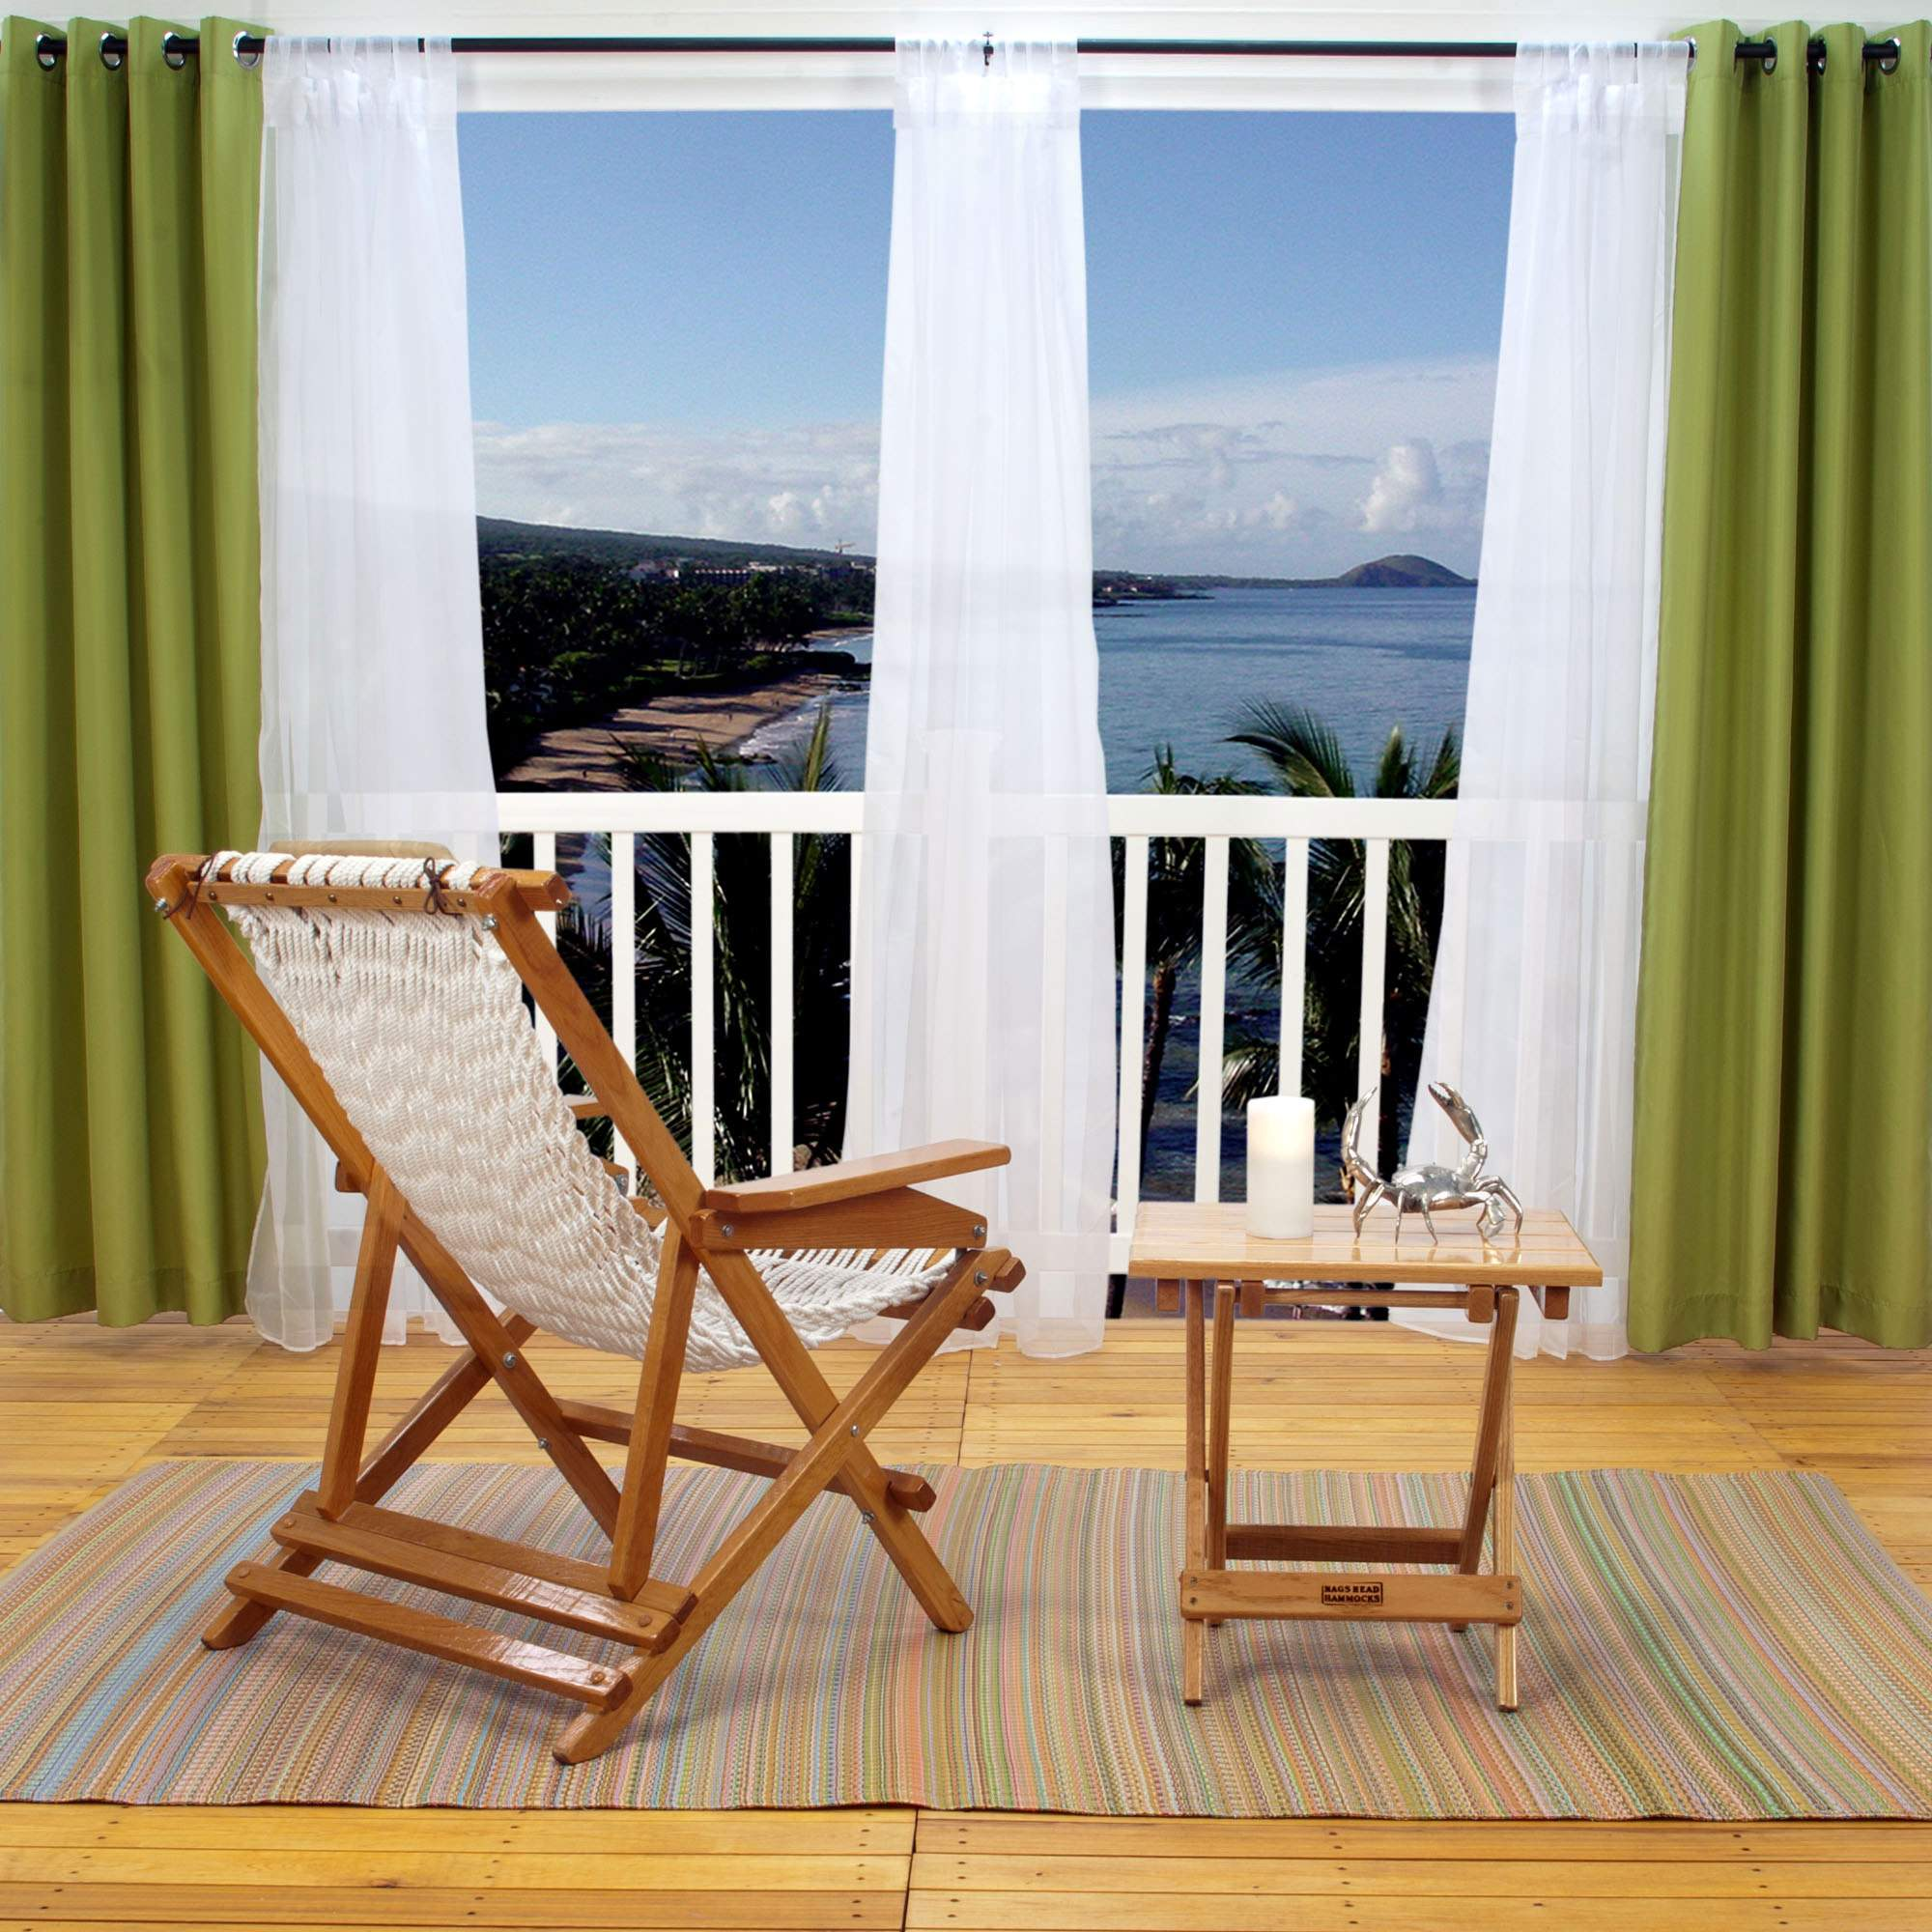 Outdoor curtains -  Polyester Outdoor Curtain With Grommets Green